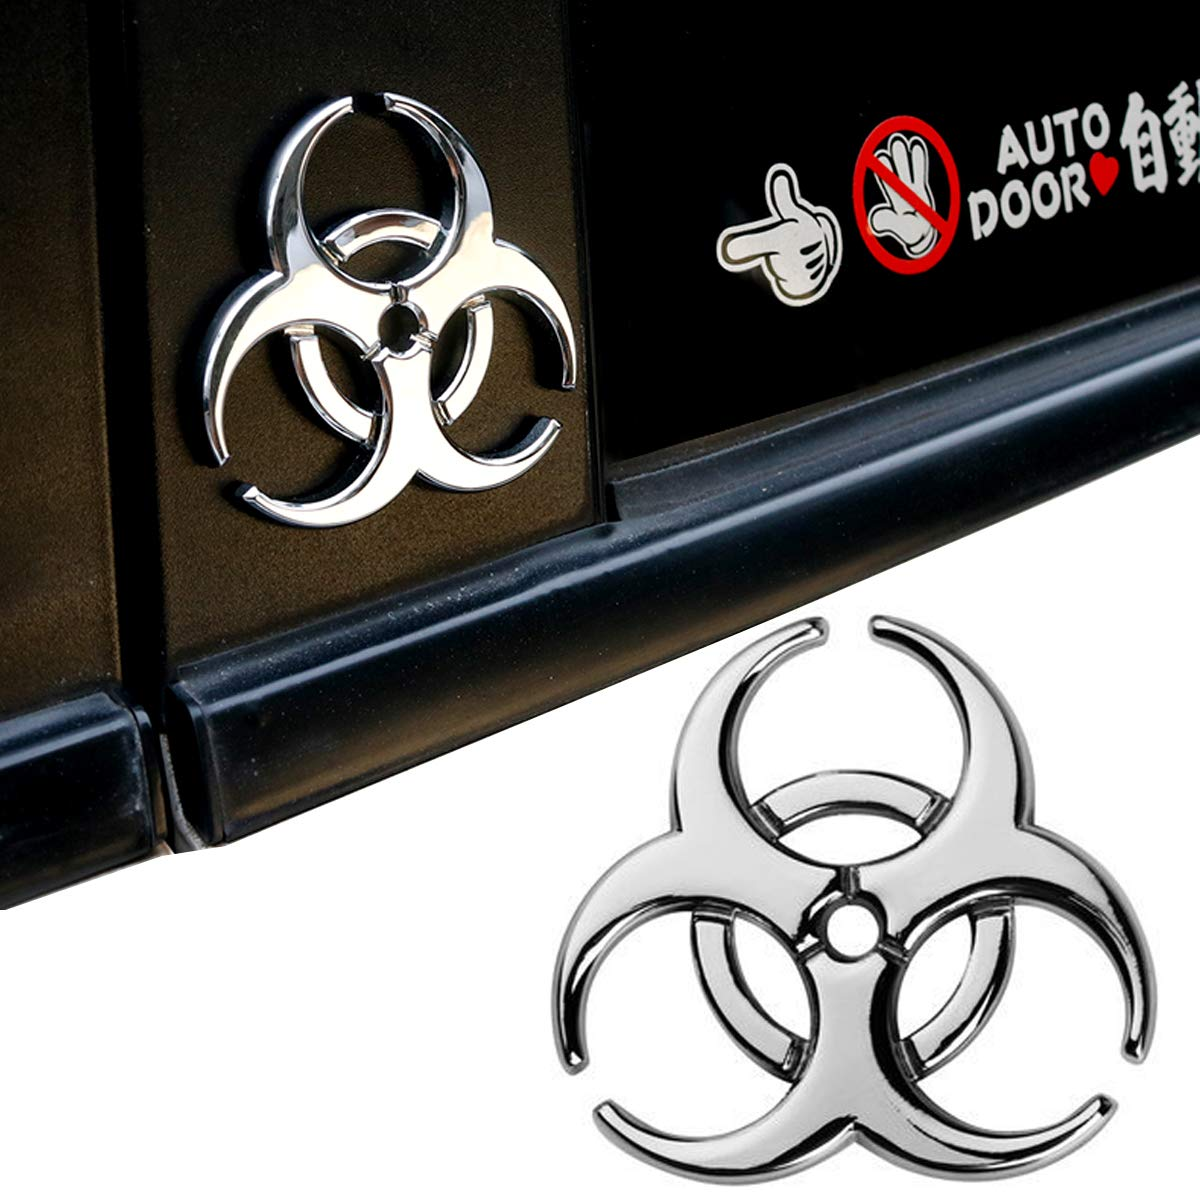 Yspring resident evil strain 3d metal decals multicolor electroplated zinc alloy umbrella corporation biohazard symbol tail side marker car